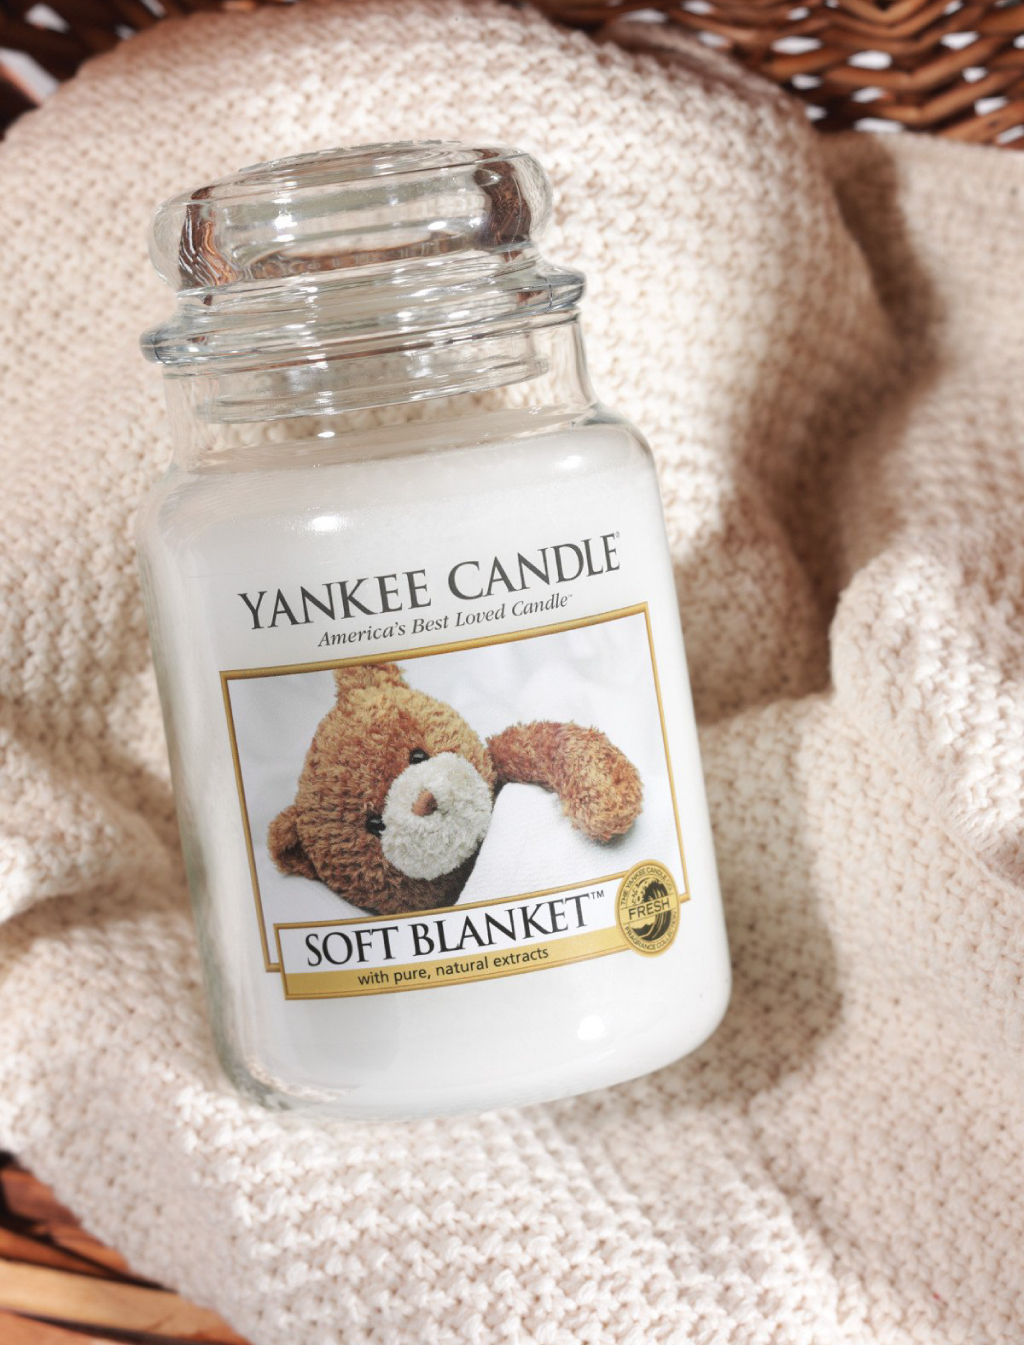 Soft Blanket Yankee Candle in promozione del 25%